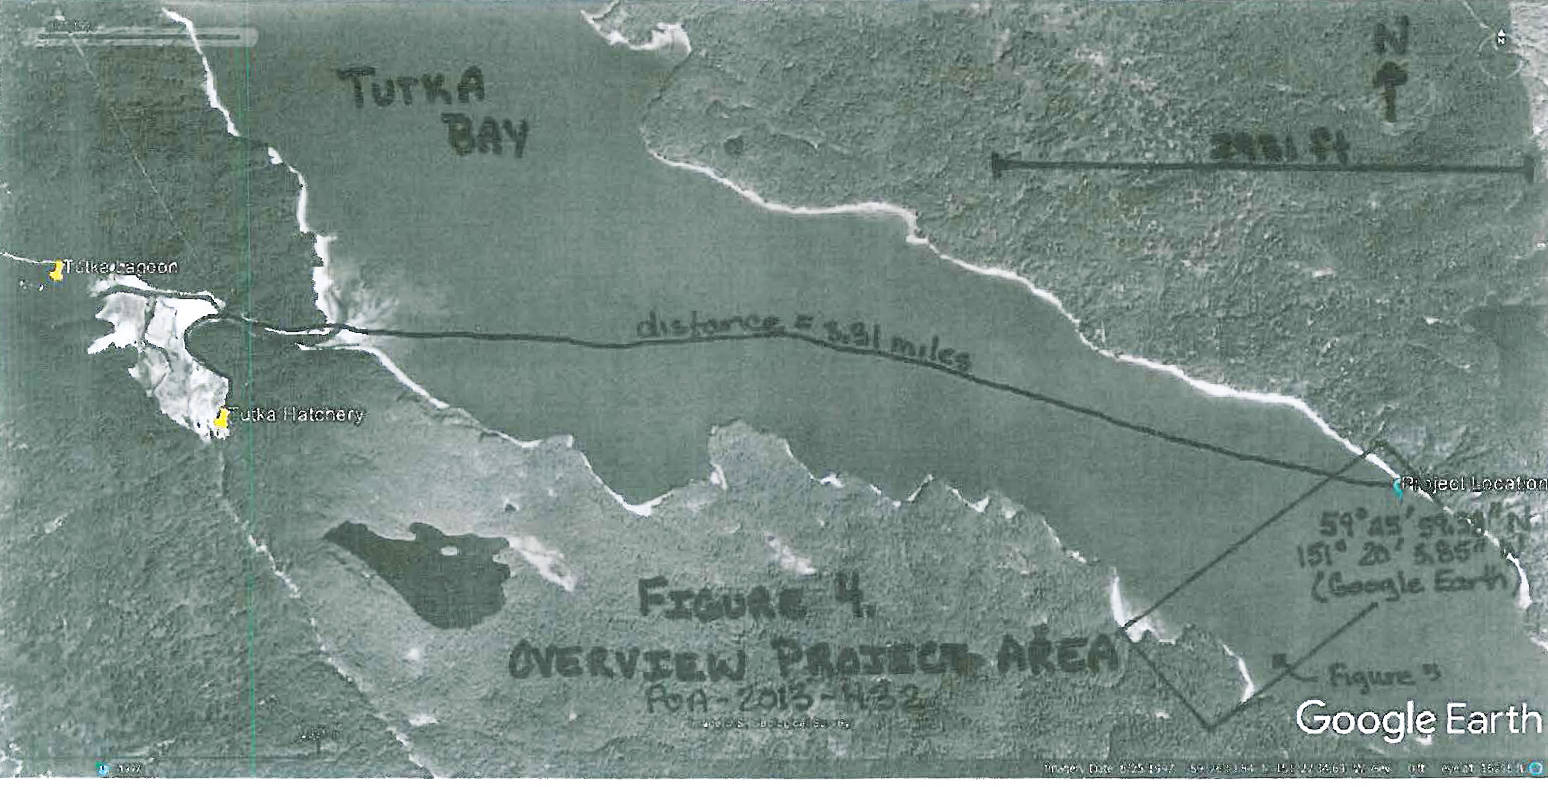 A map included in the Cook Inlet Aquaculture Association's permit application for salmon rearing net pens shows the location as closer to Tutka Bay Lagoon.